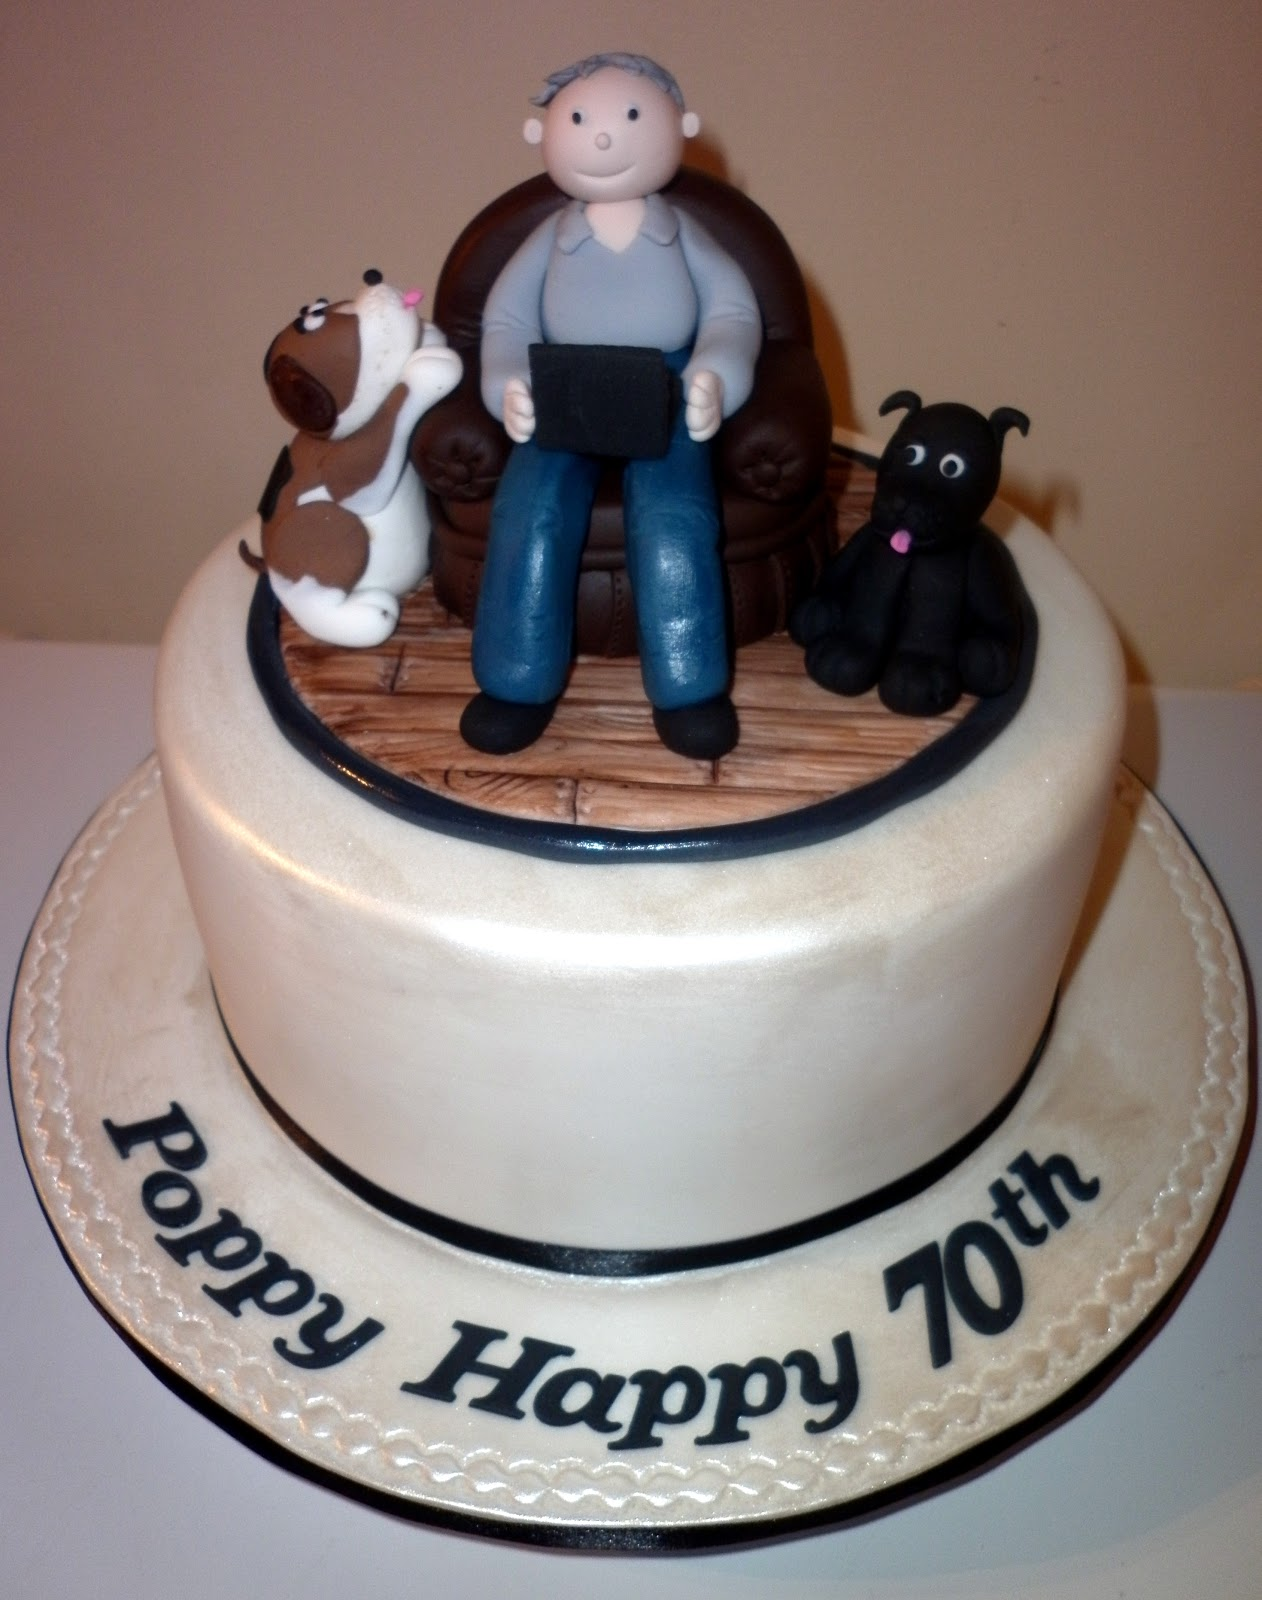 70Th Birthday Cakes for Men http://caketopia.blogspot.com/2011/06/70th-birthday-cake.html